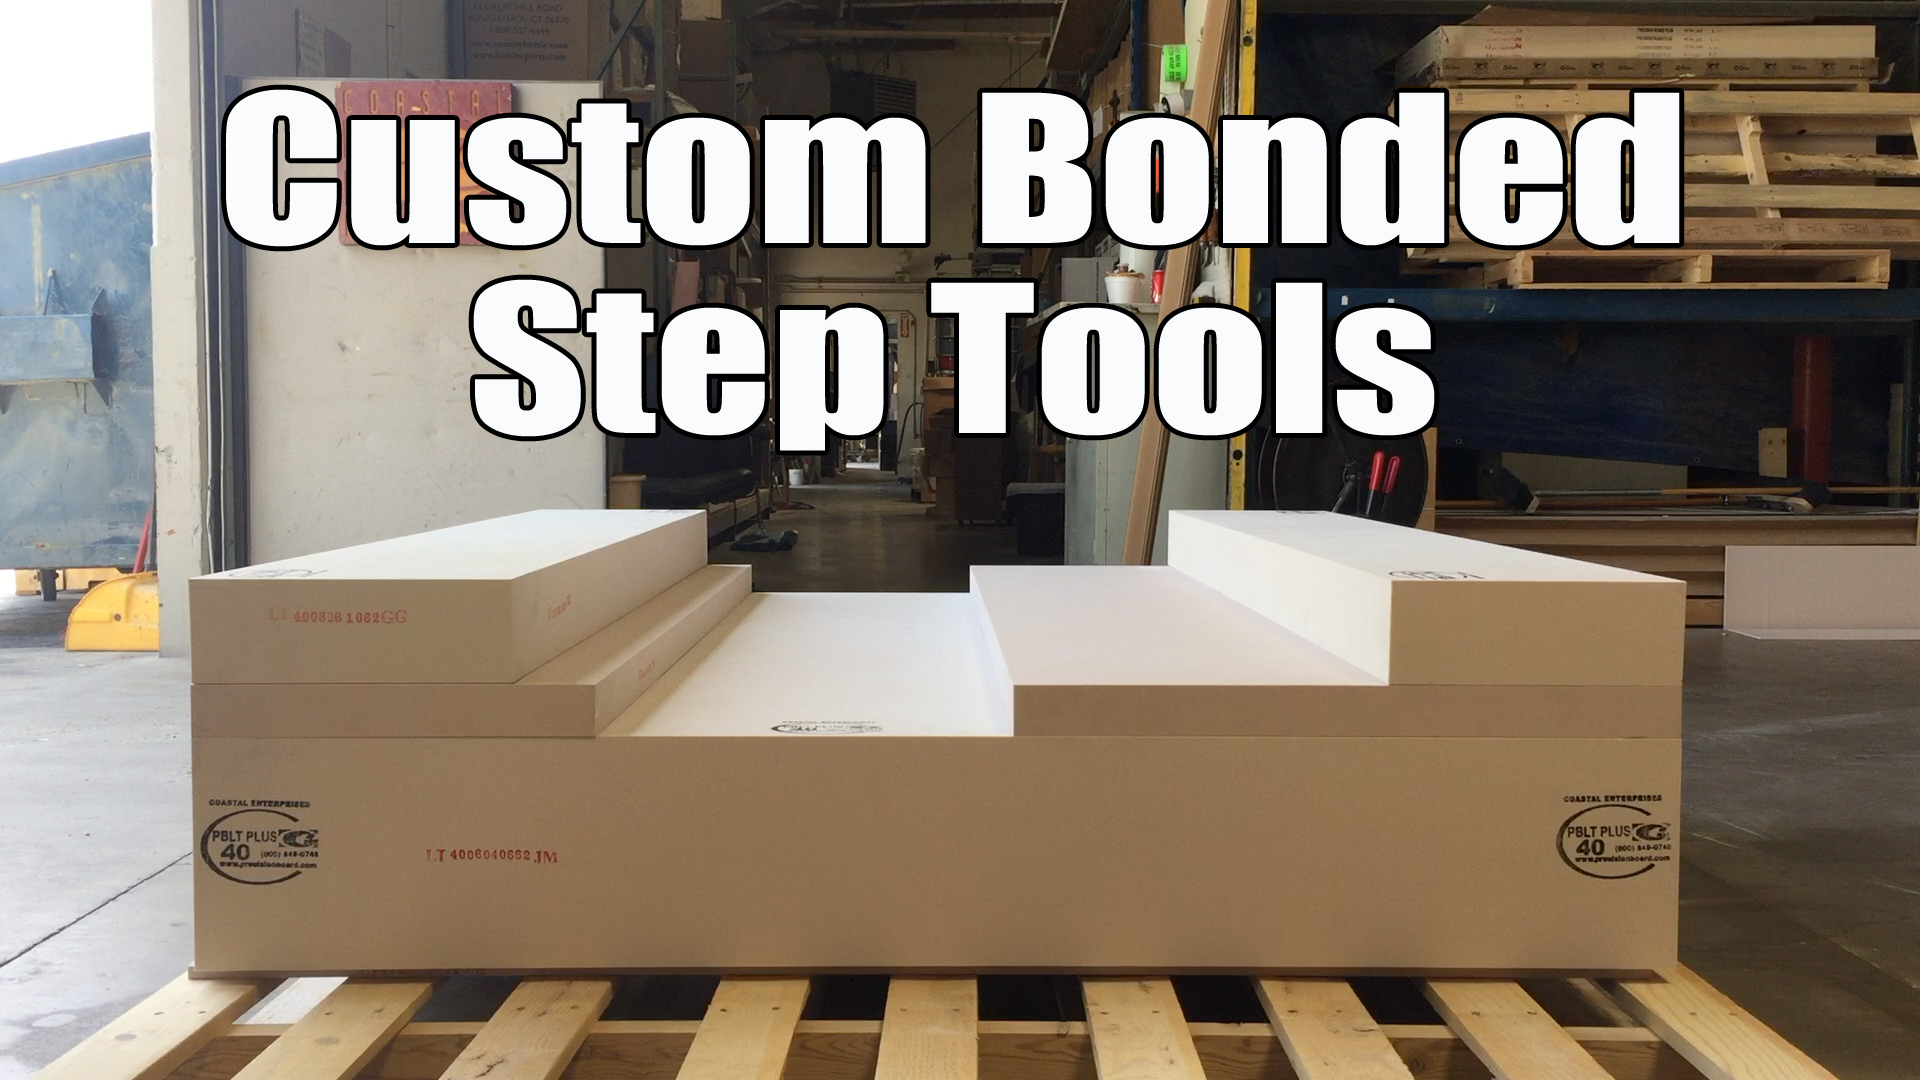 Custom Bonded Step Tools